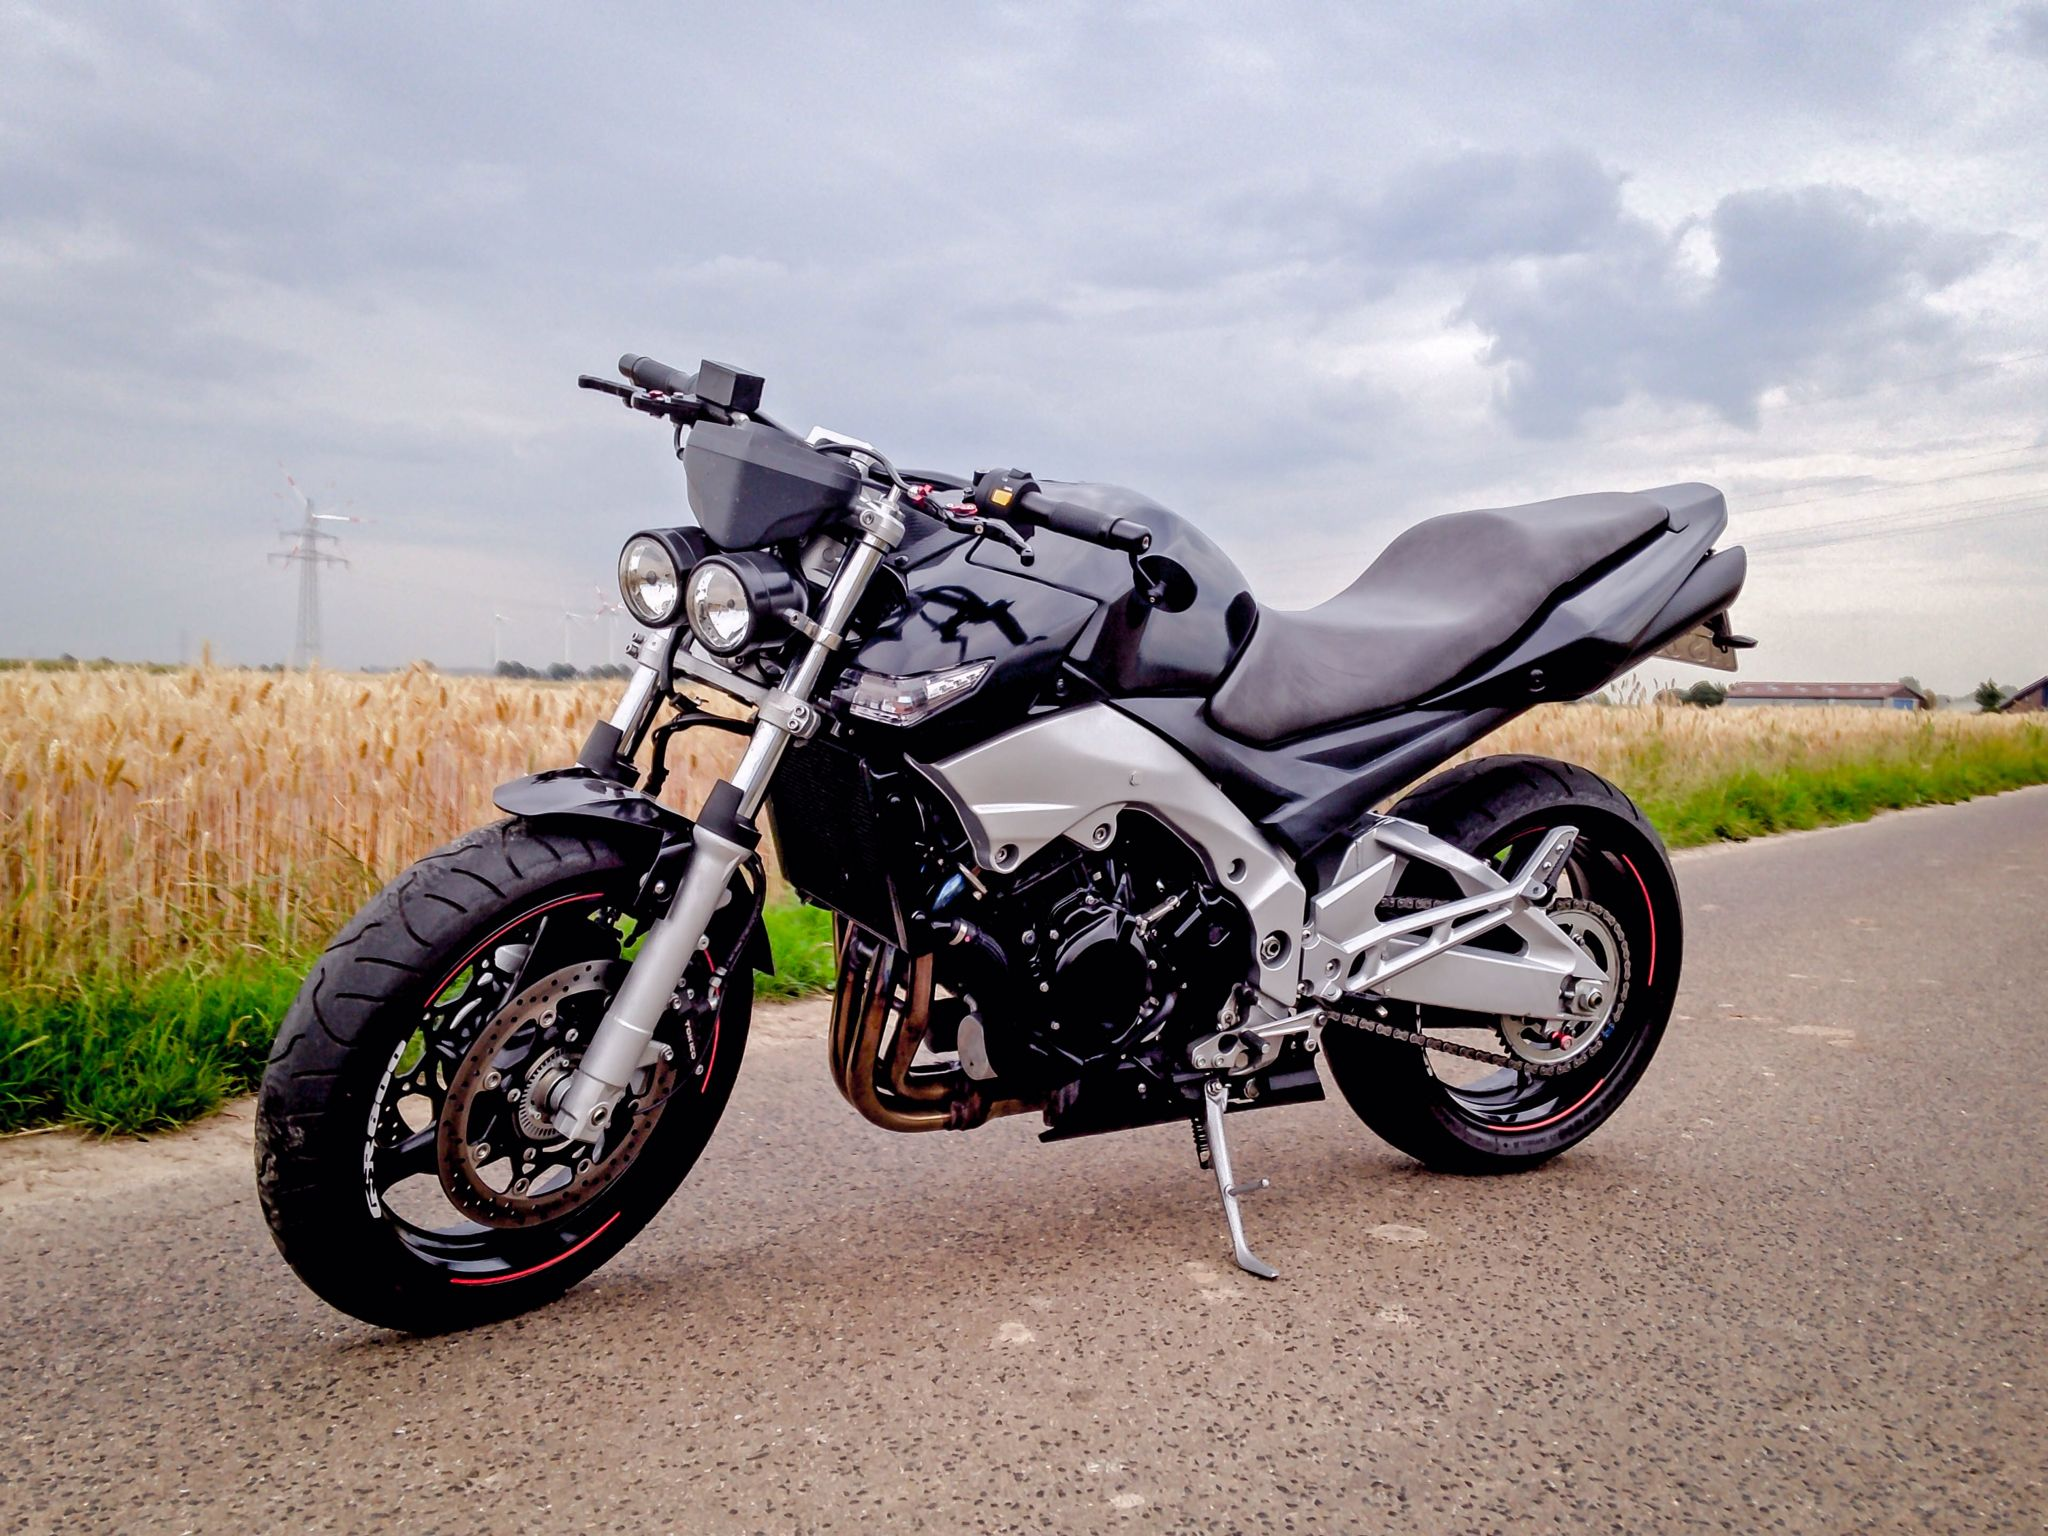 suzuki gsr 600 custom september 2015 my gsr 600 pinterest mopeds. Black Bedroom Furniture Sets. Home Design Ideas